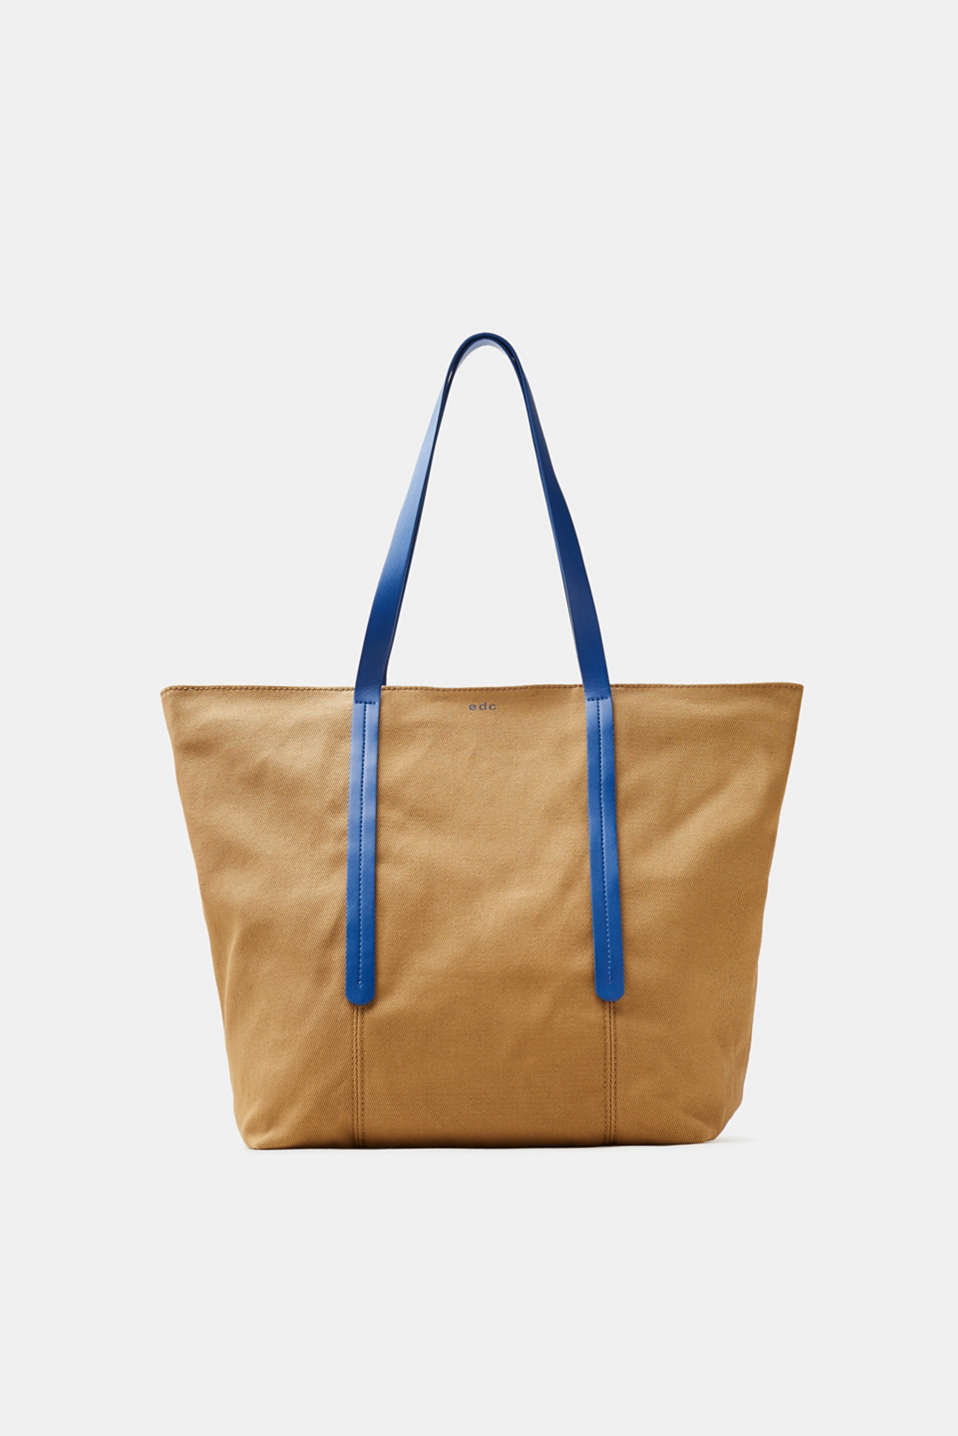 edc - Canvas-Shopper mit Baumwolle